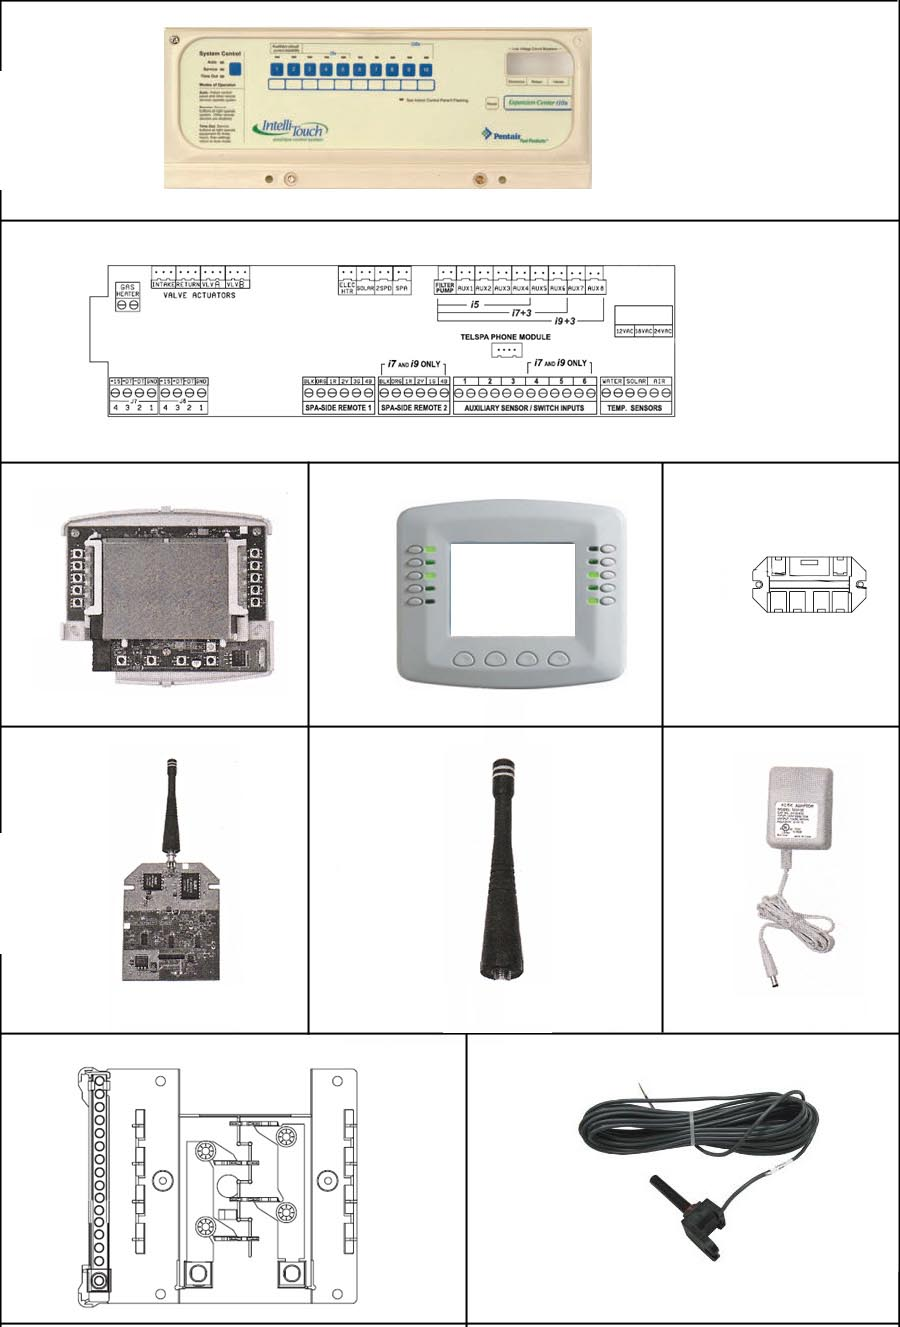 PicturesCategory/intellitouch-parts.jpg